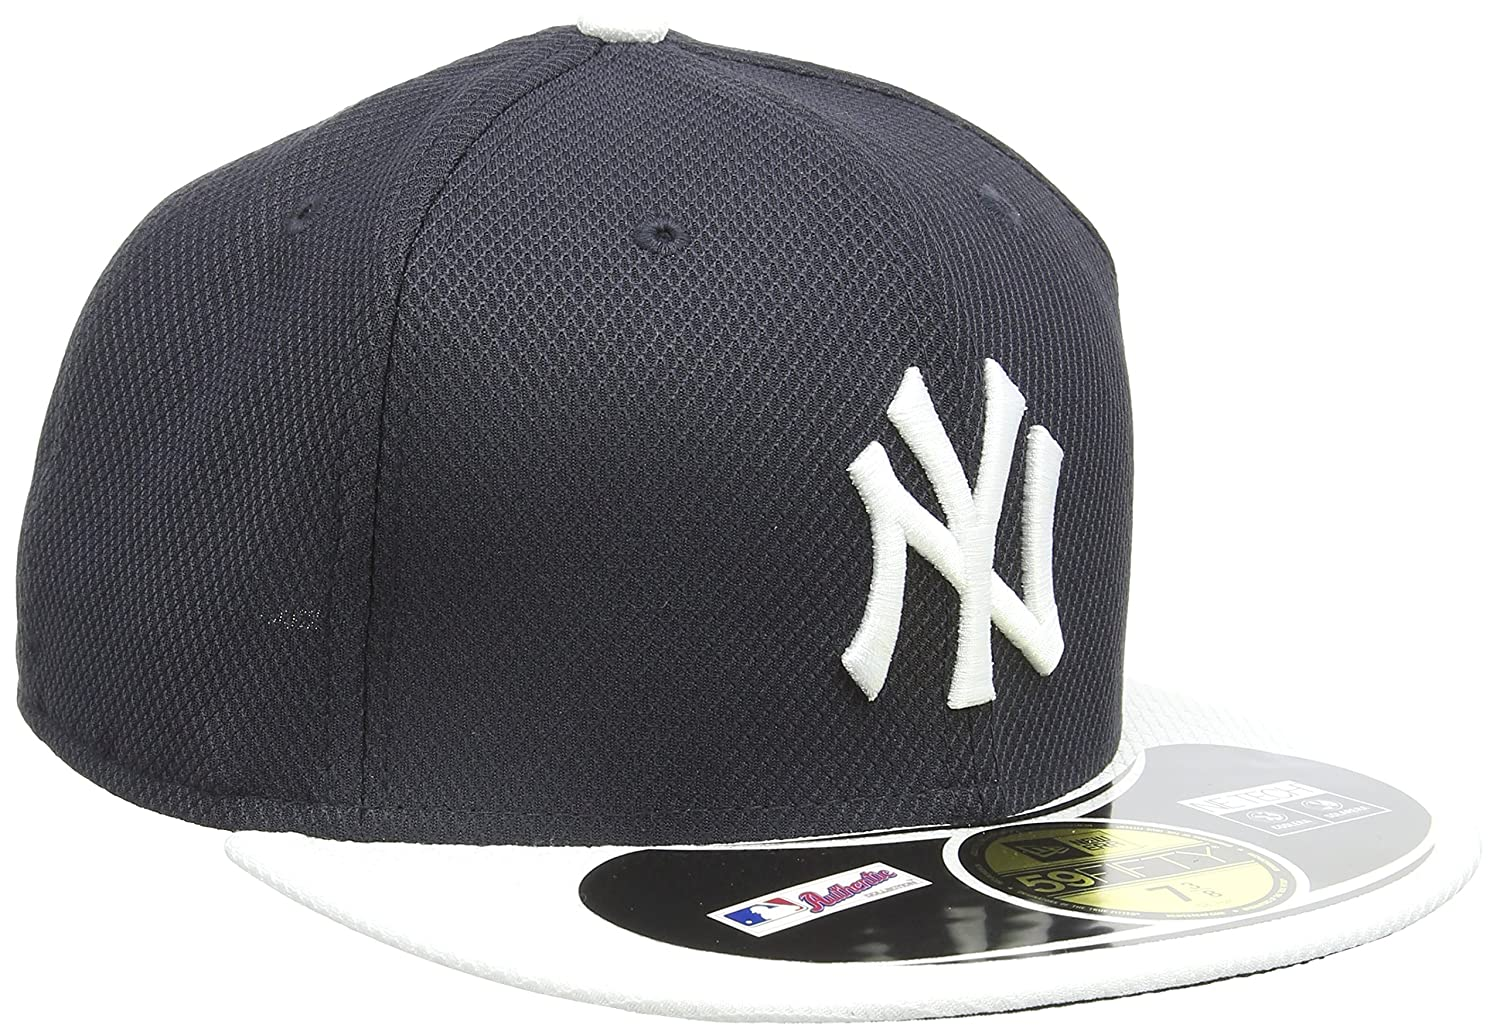 watch ce879 31056 Amazon.com   MLB New York Yankees Batting Practice 59Fifty Baseball Cap,  Navy White   Baseball And Softball Apparel   Clothing